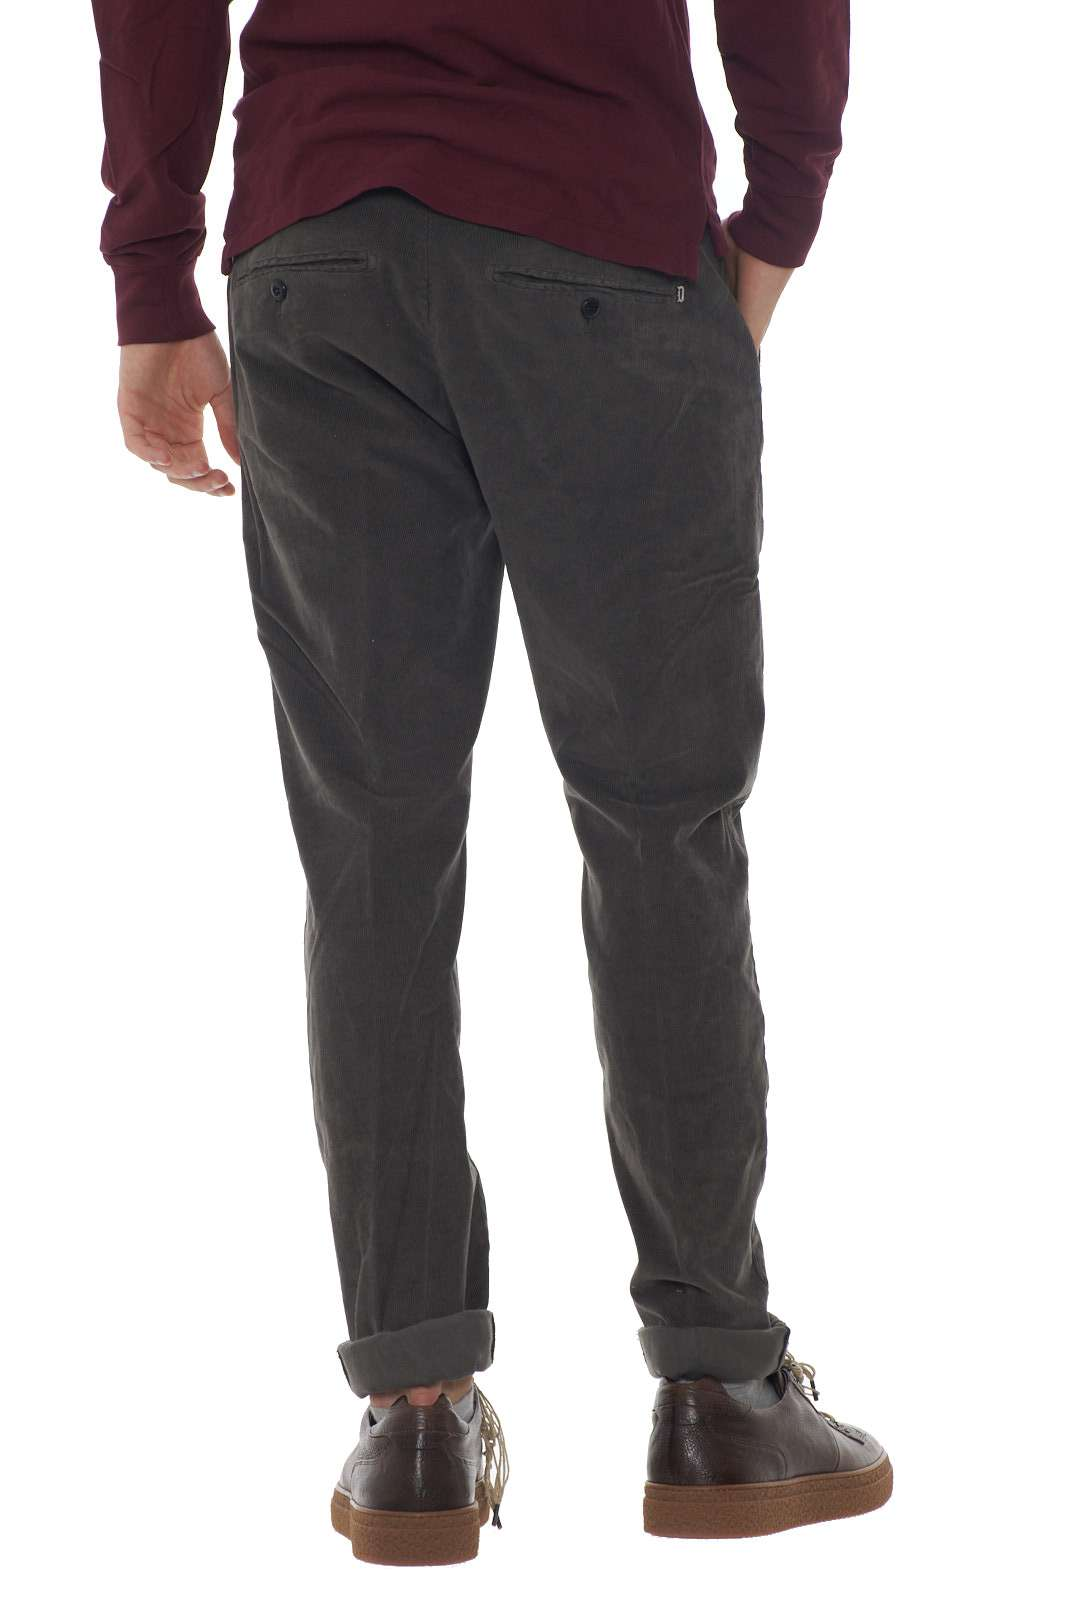 https://www.parmax.com/media/catalog/product/a/i/AI-outlet_parmax-pantaloni-uomo-Dondup-UP235%20VS0012U-C.jpg